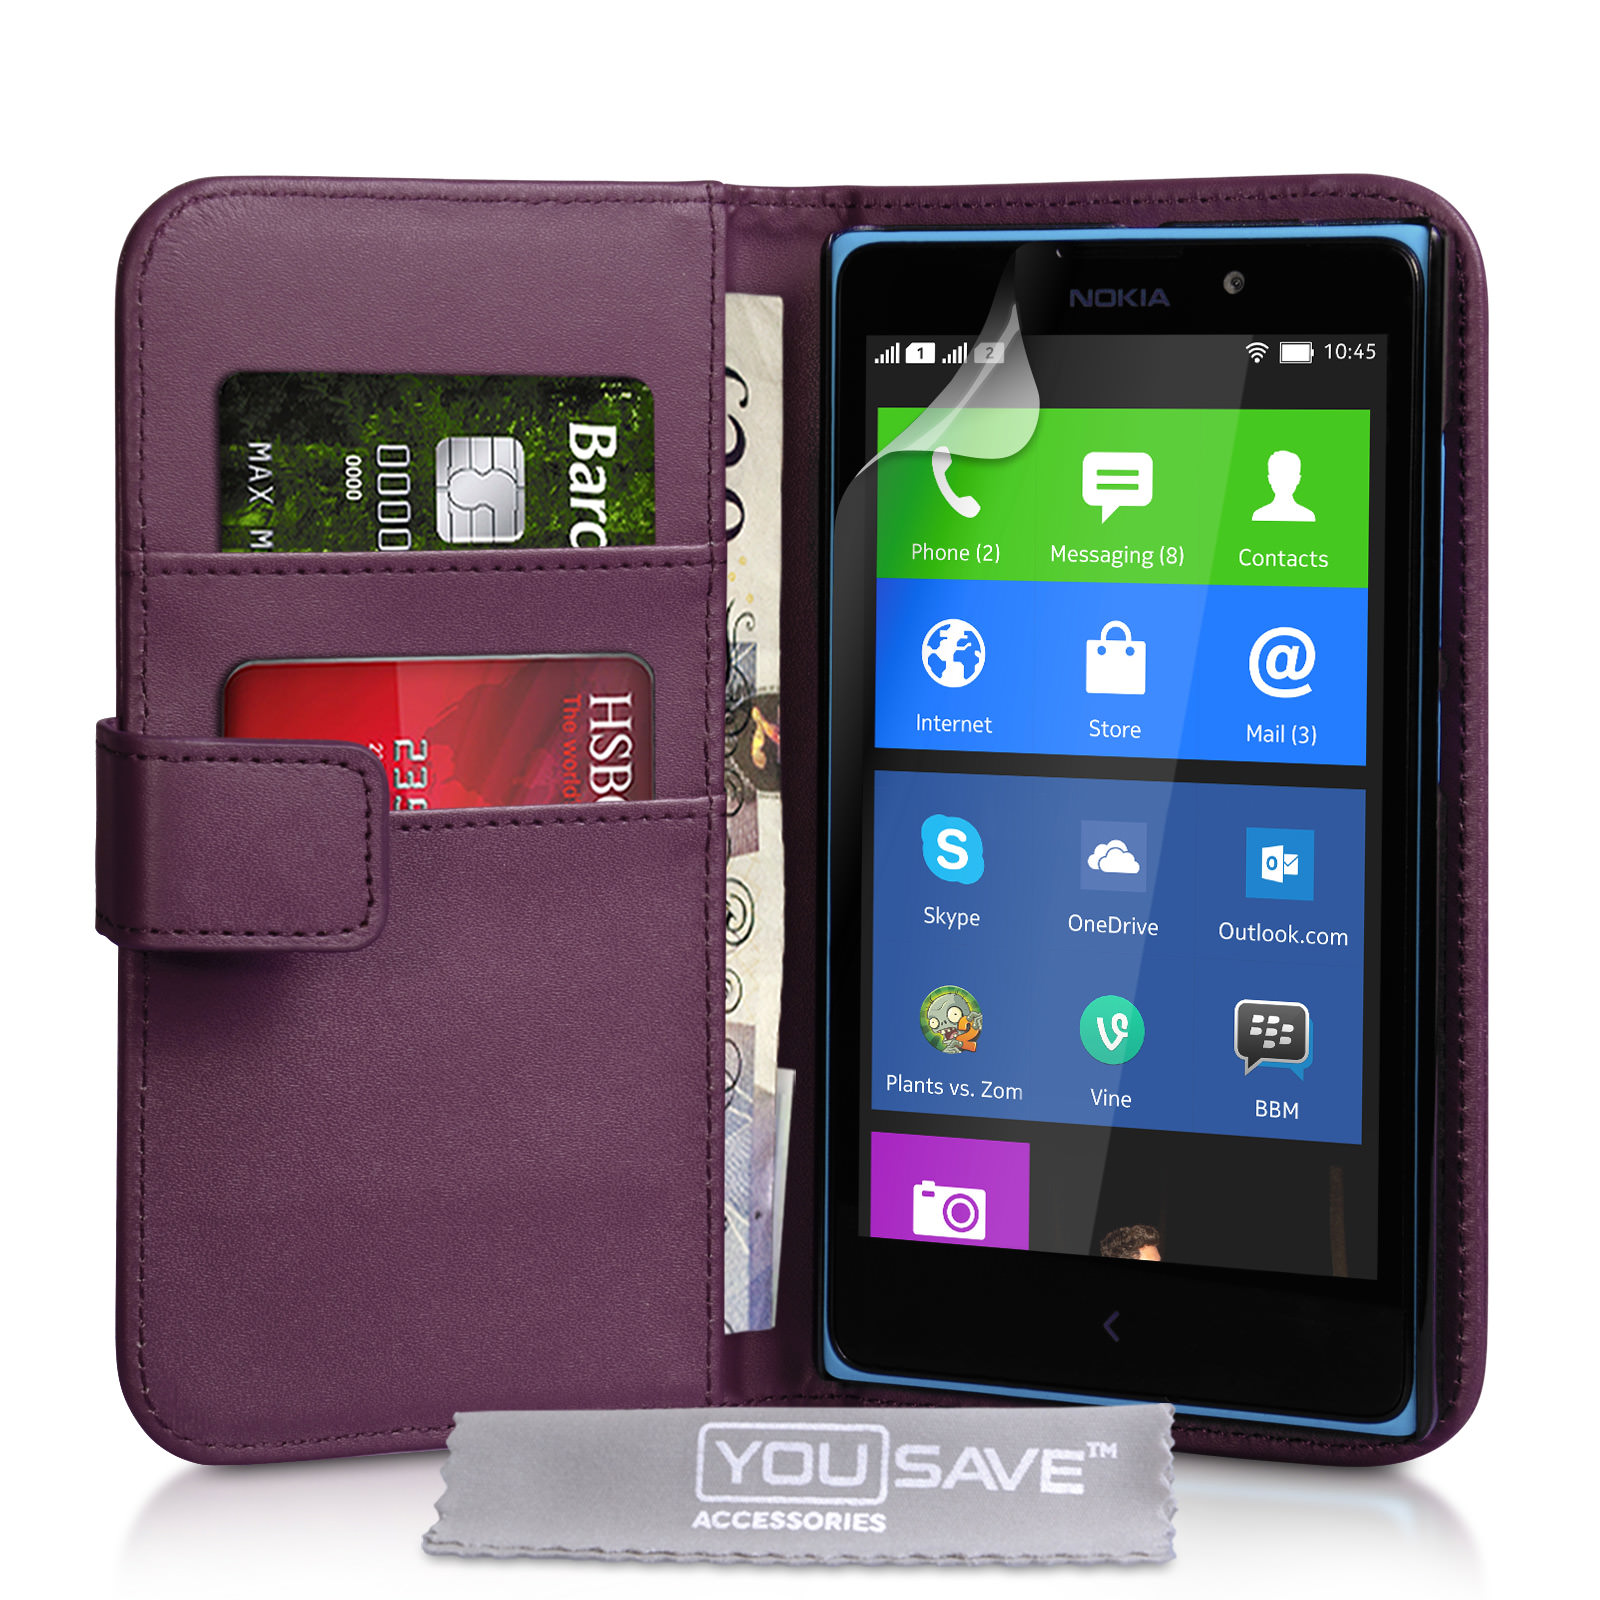 YouSave Accessories Nokia XL Leather-Effect Wallet Case - Purple